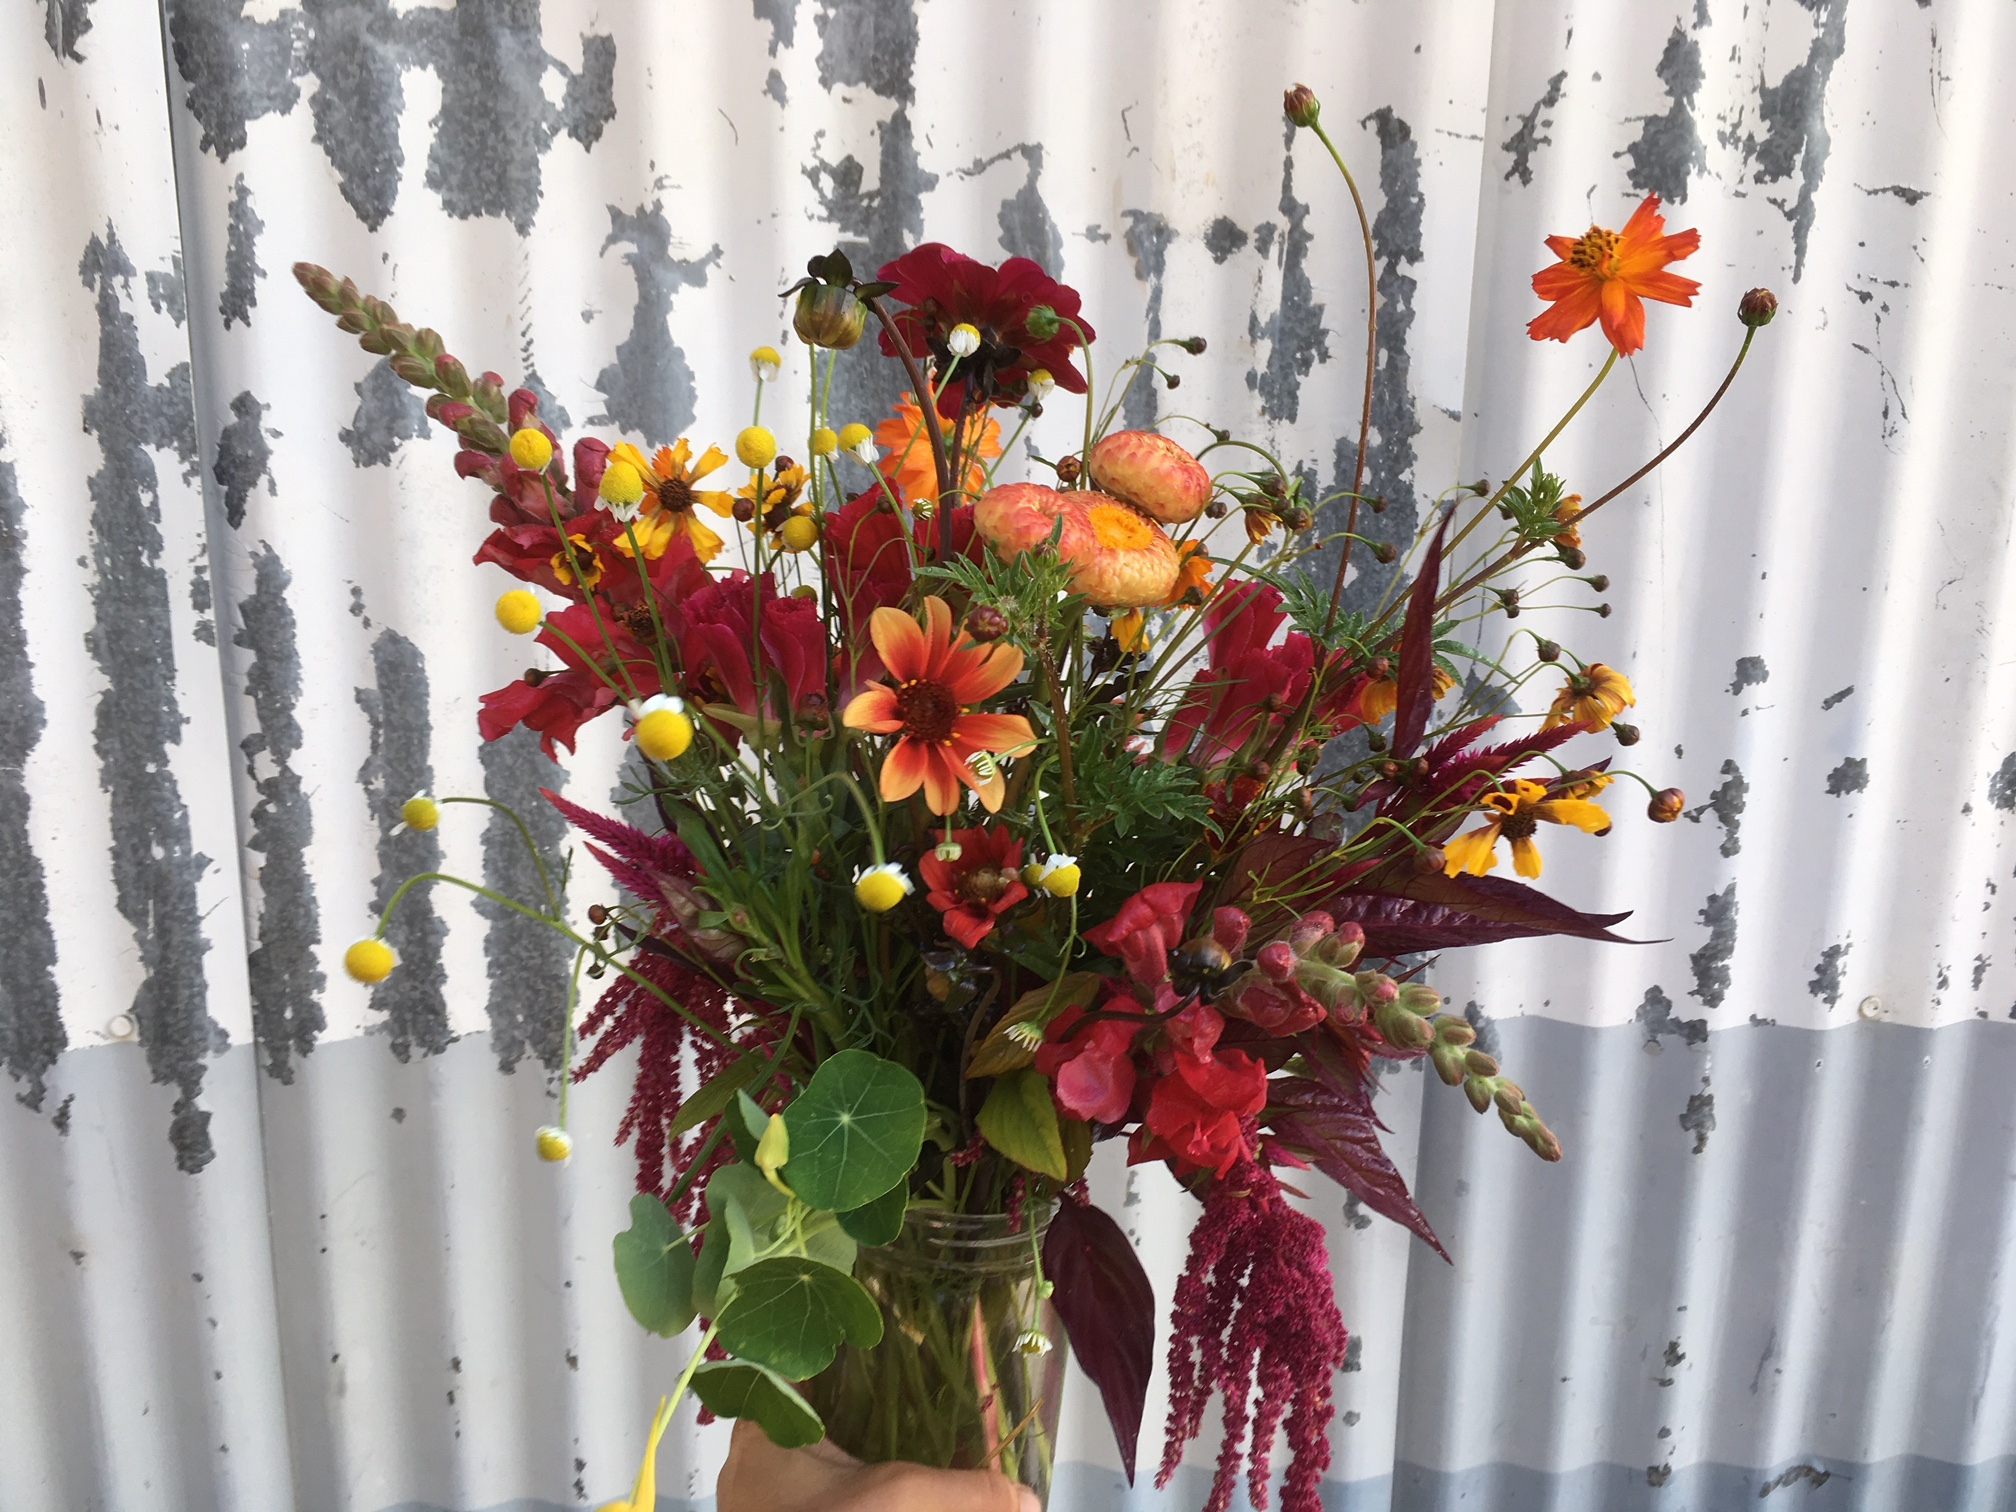 Kayta's study in red bouquet from last week